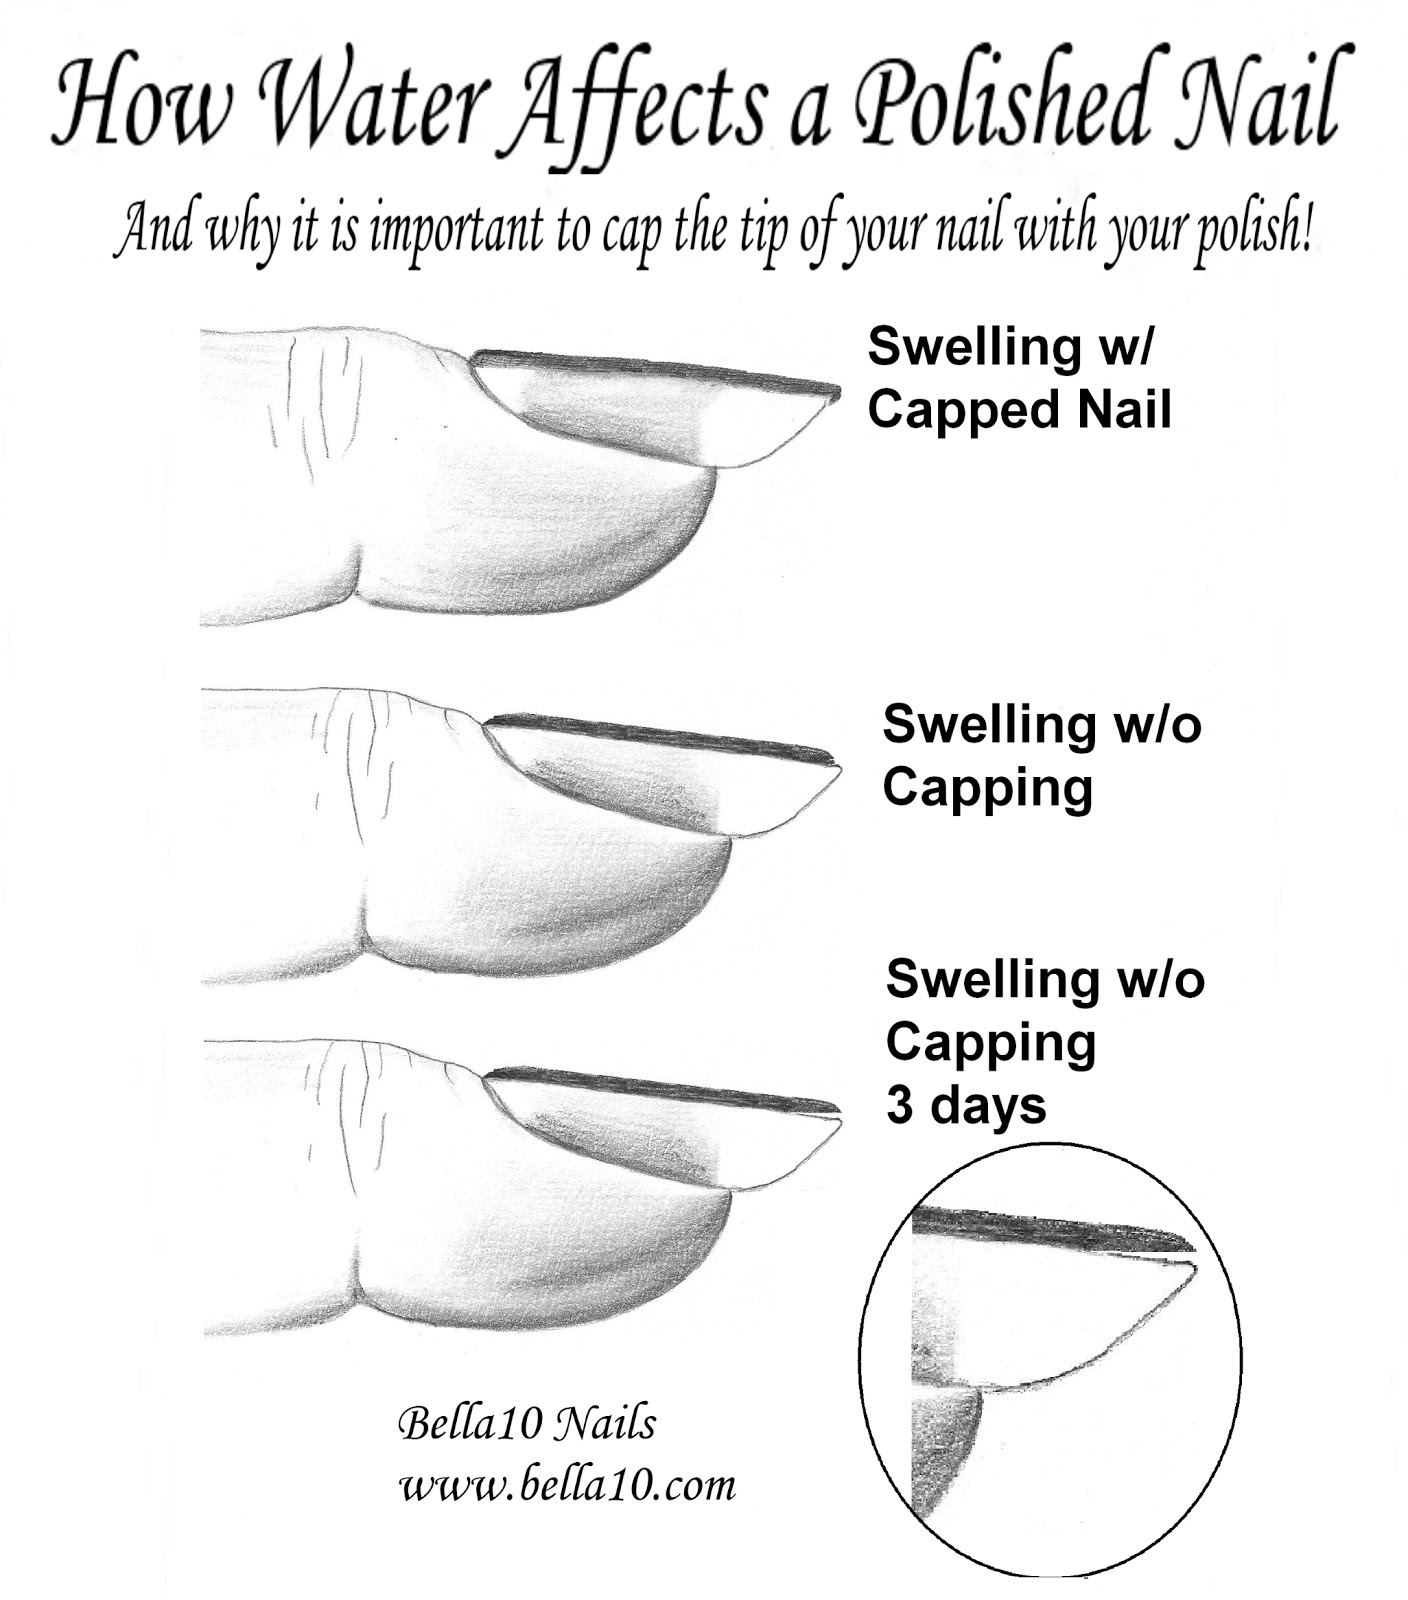 Bella10 Nails: Prevent Polish Chipping and Peeling